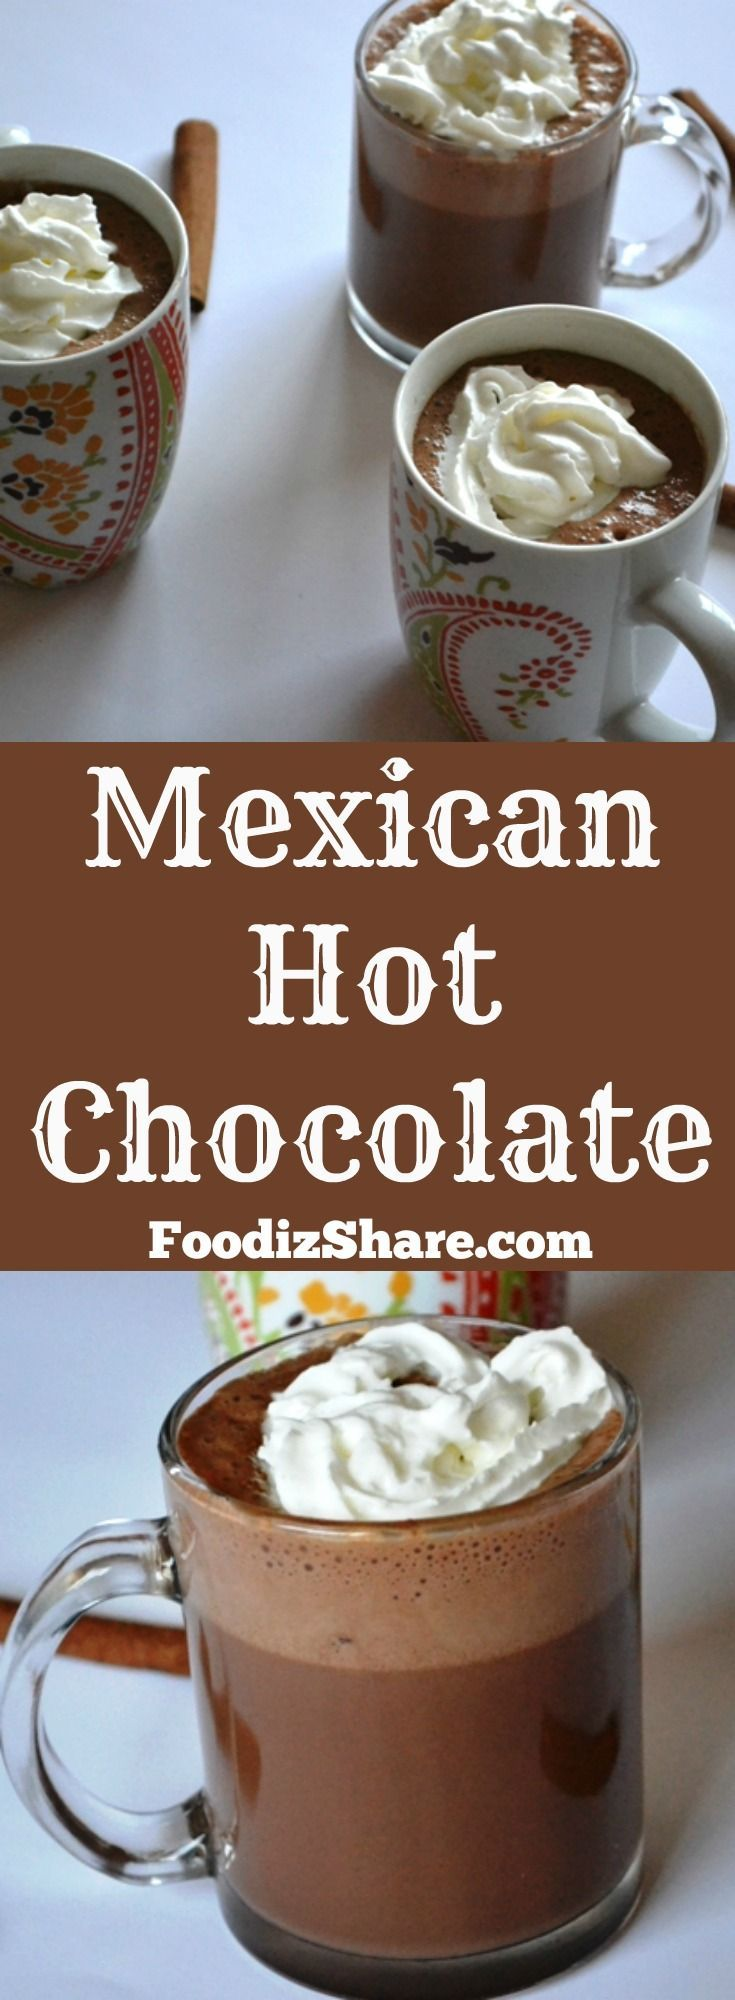 Best 25+ Mexican hot chocolate ideas on Pinterest | Chili ...